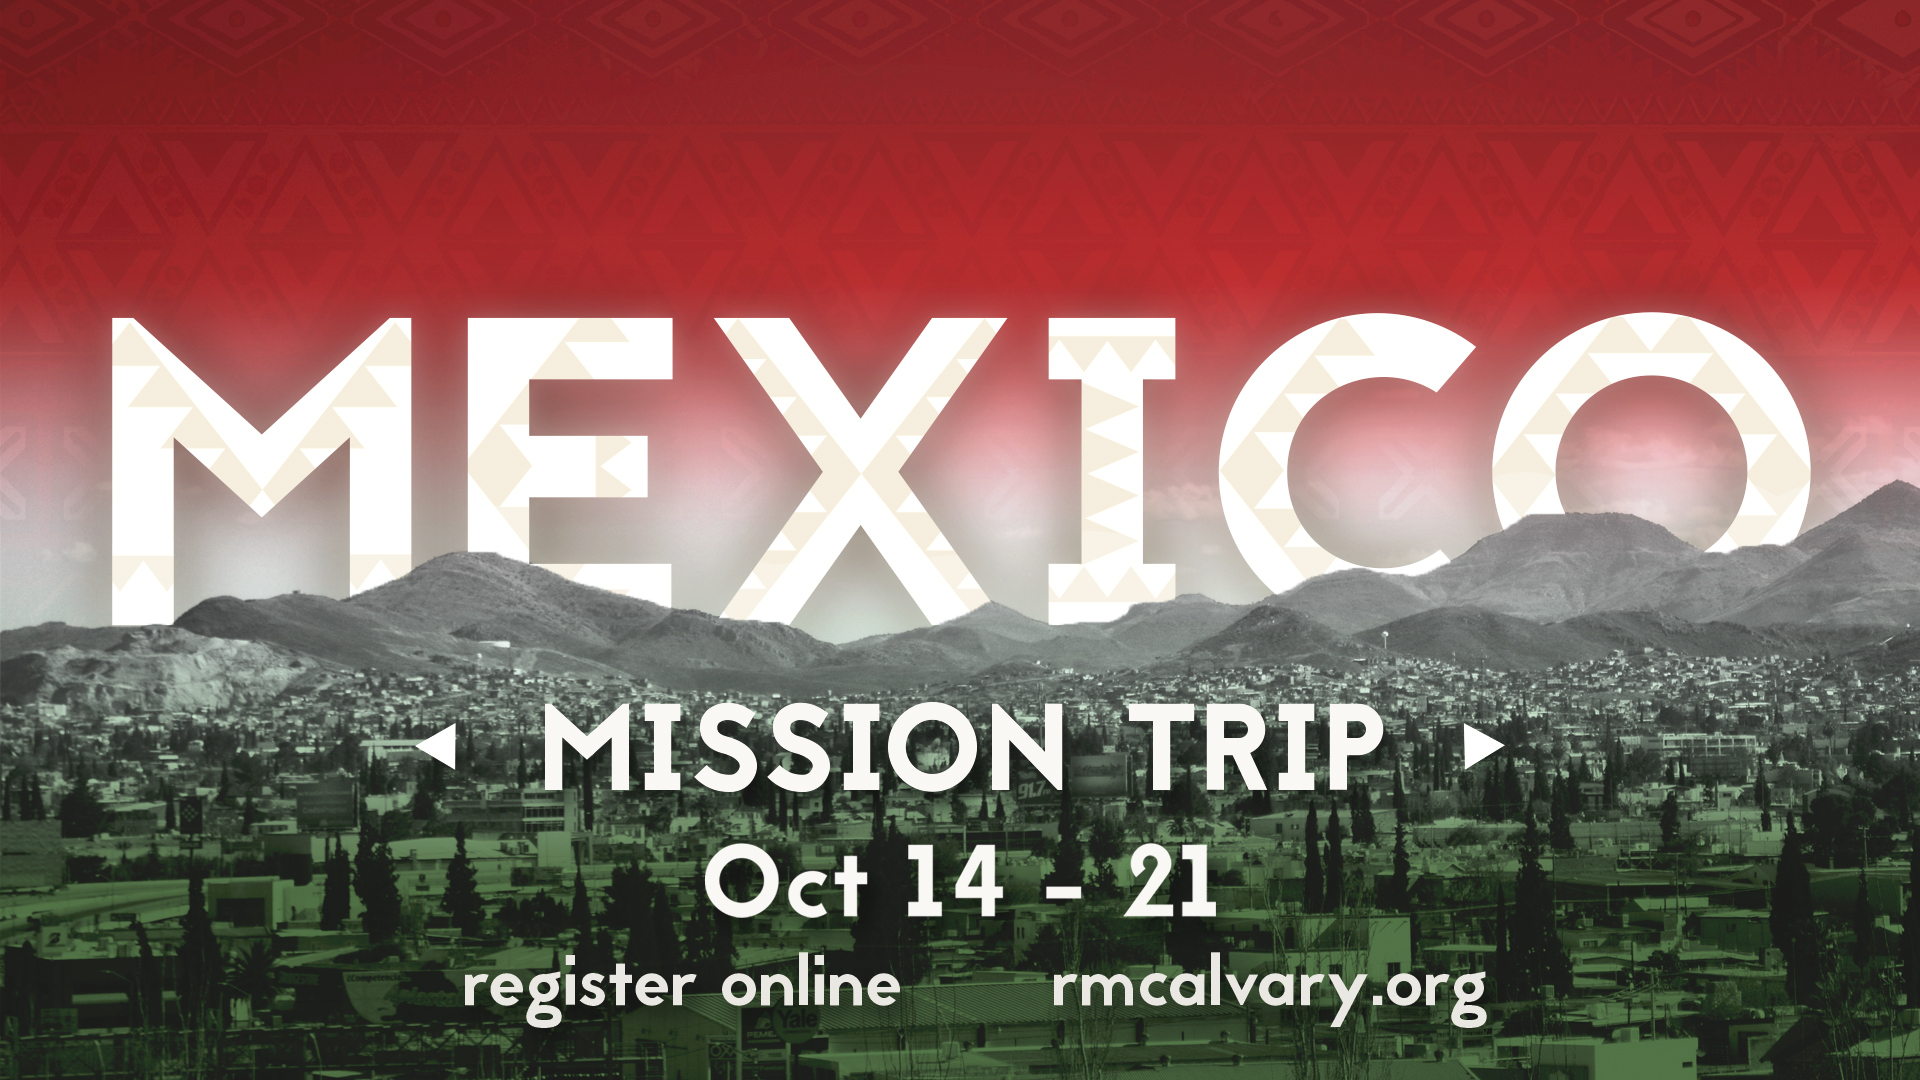 Mission Trip Quotes Mexico Mission Trips Salem Alliance Church Mission Trip Mexi